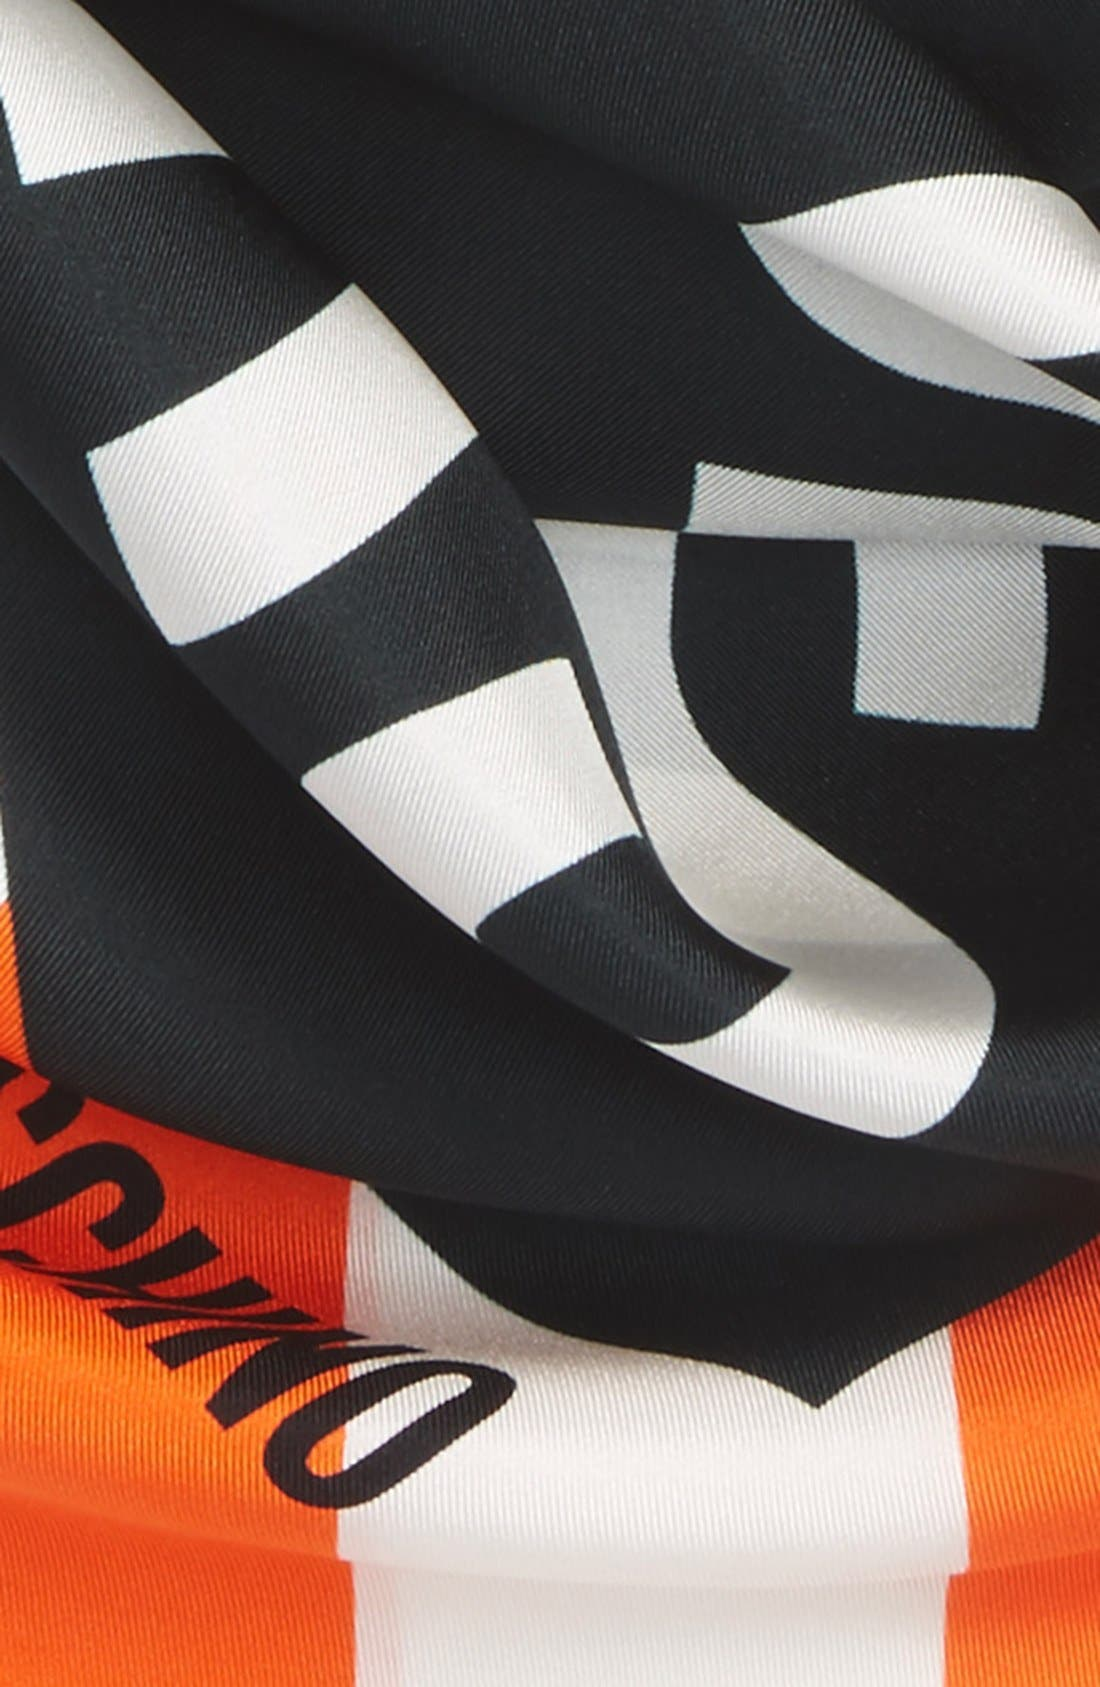 Alternate Image 3  - Moschino 'Clothed for Repairs' Square Silk Scarf